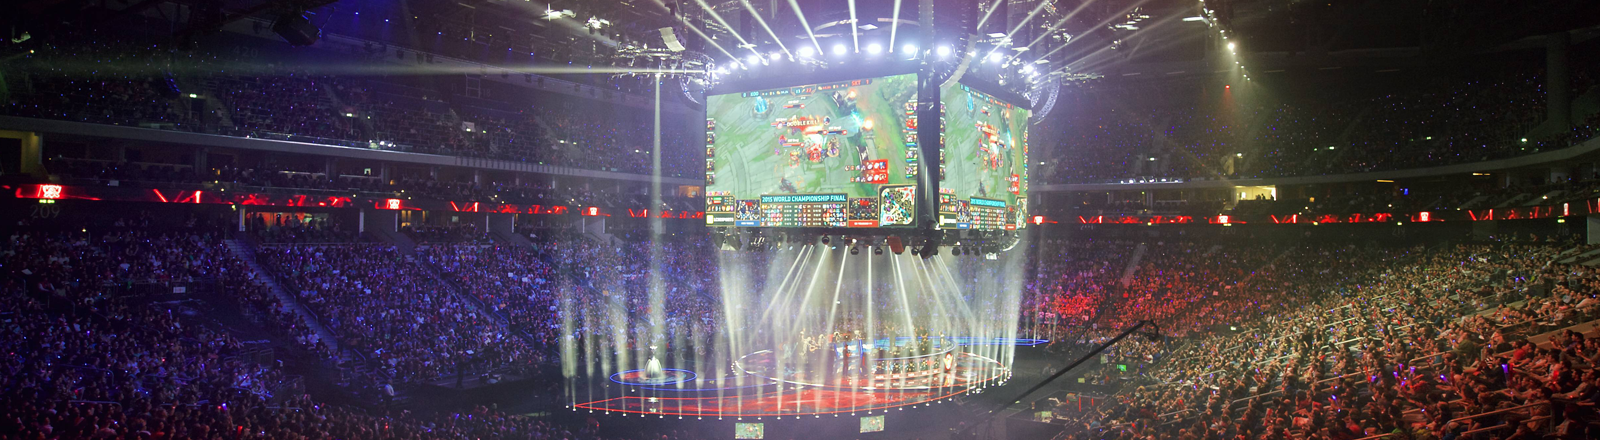 ESports Berlin 31.10.2015, Mercedes-Benz-Arena: LoL League of Legends by Riot Games Finals 2015